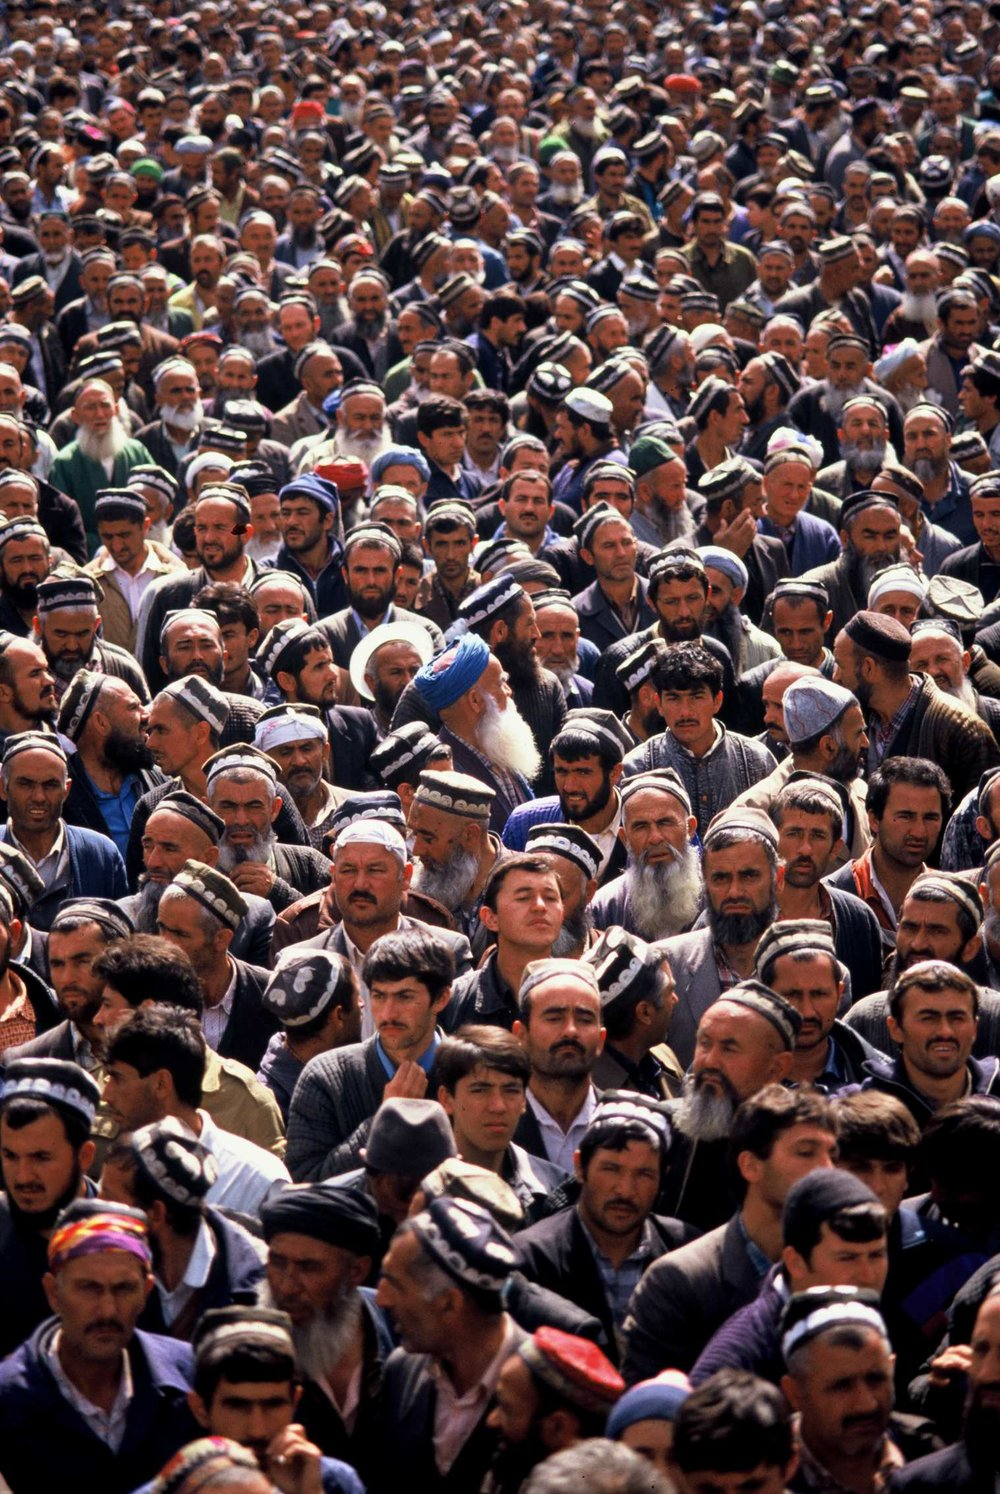 Islamic Renaissance Party Protest. Dushanbe, Tajikistan. 1992